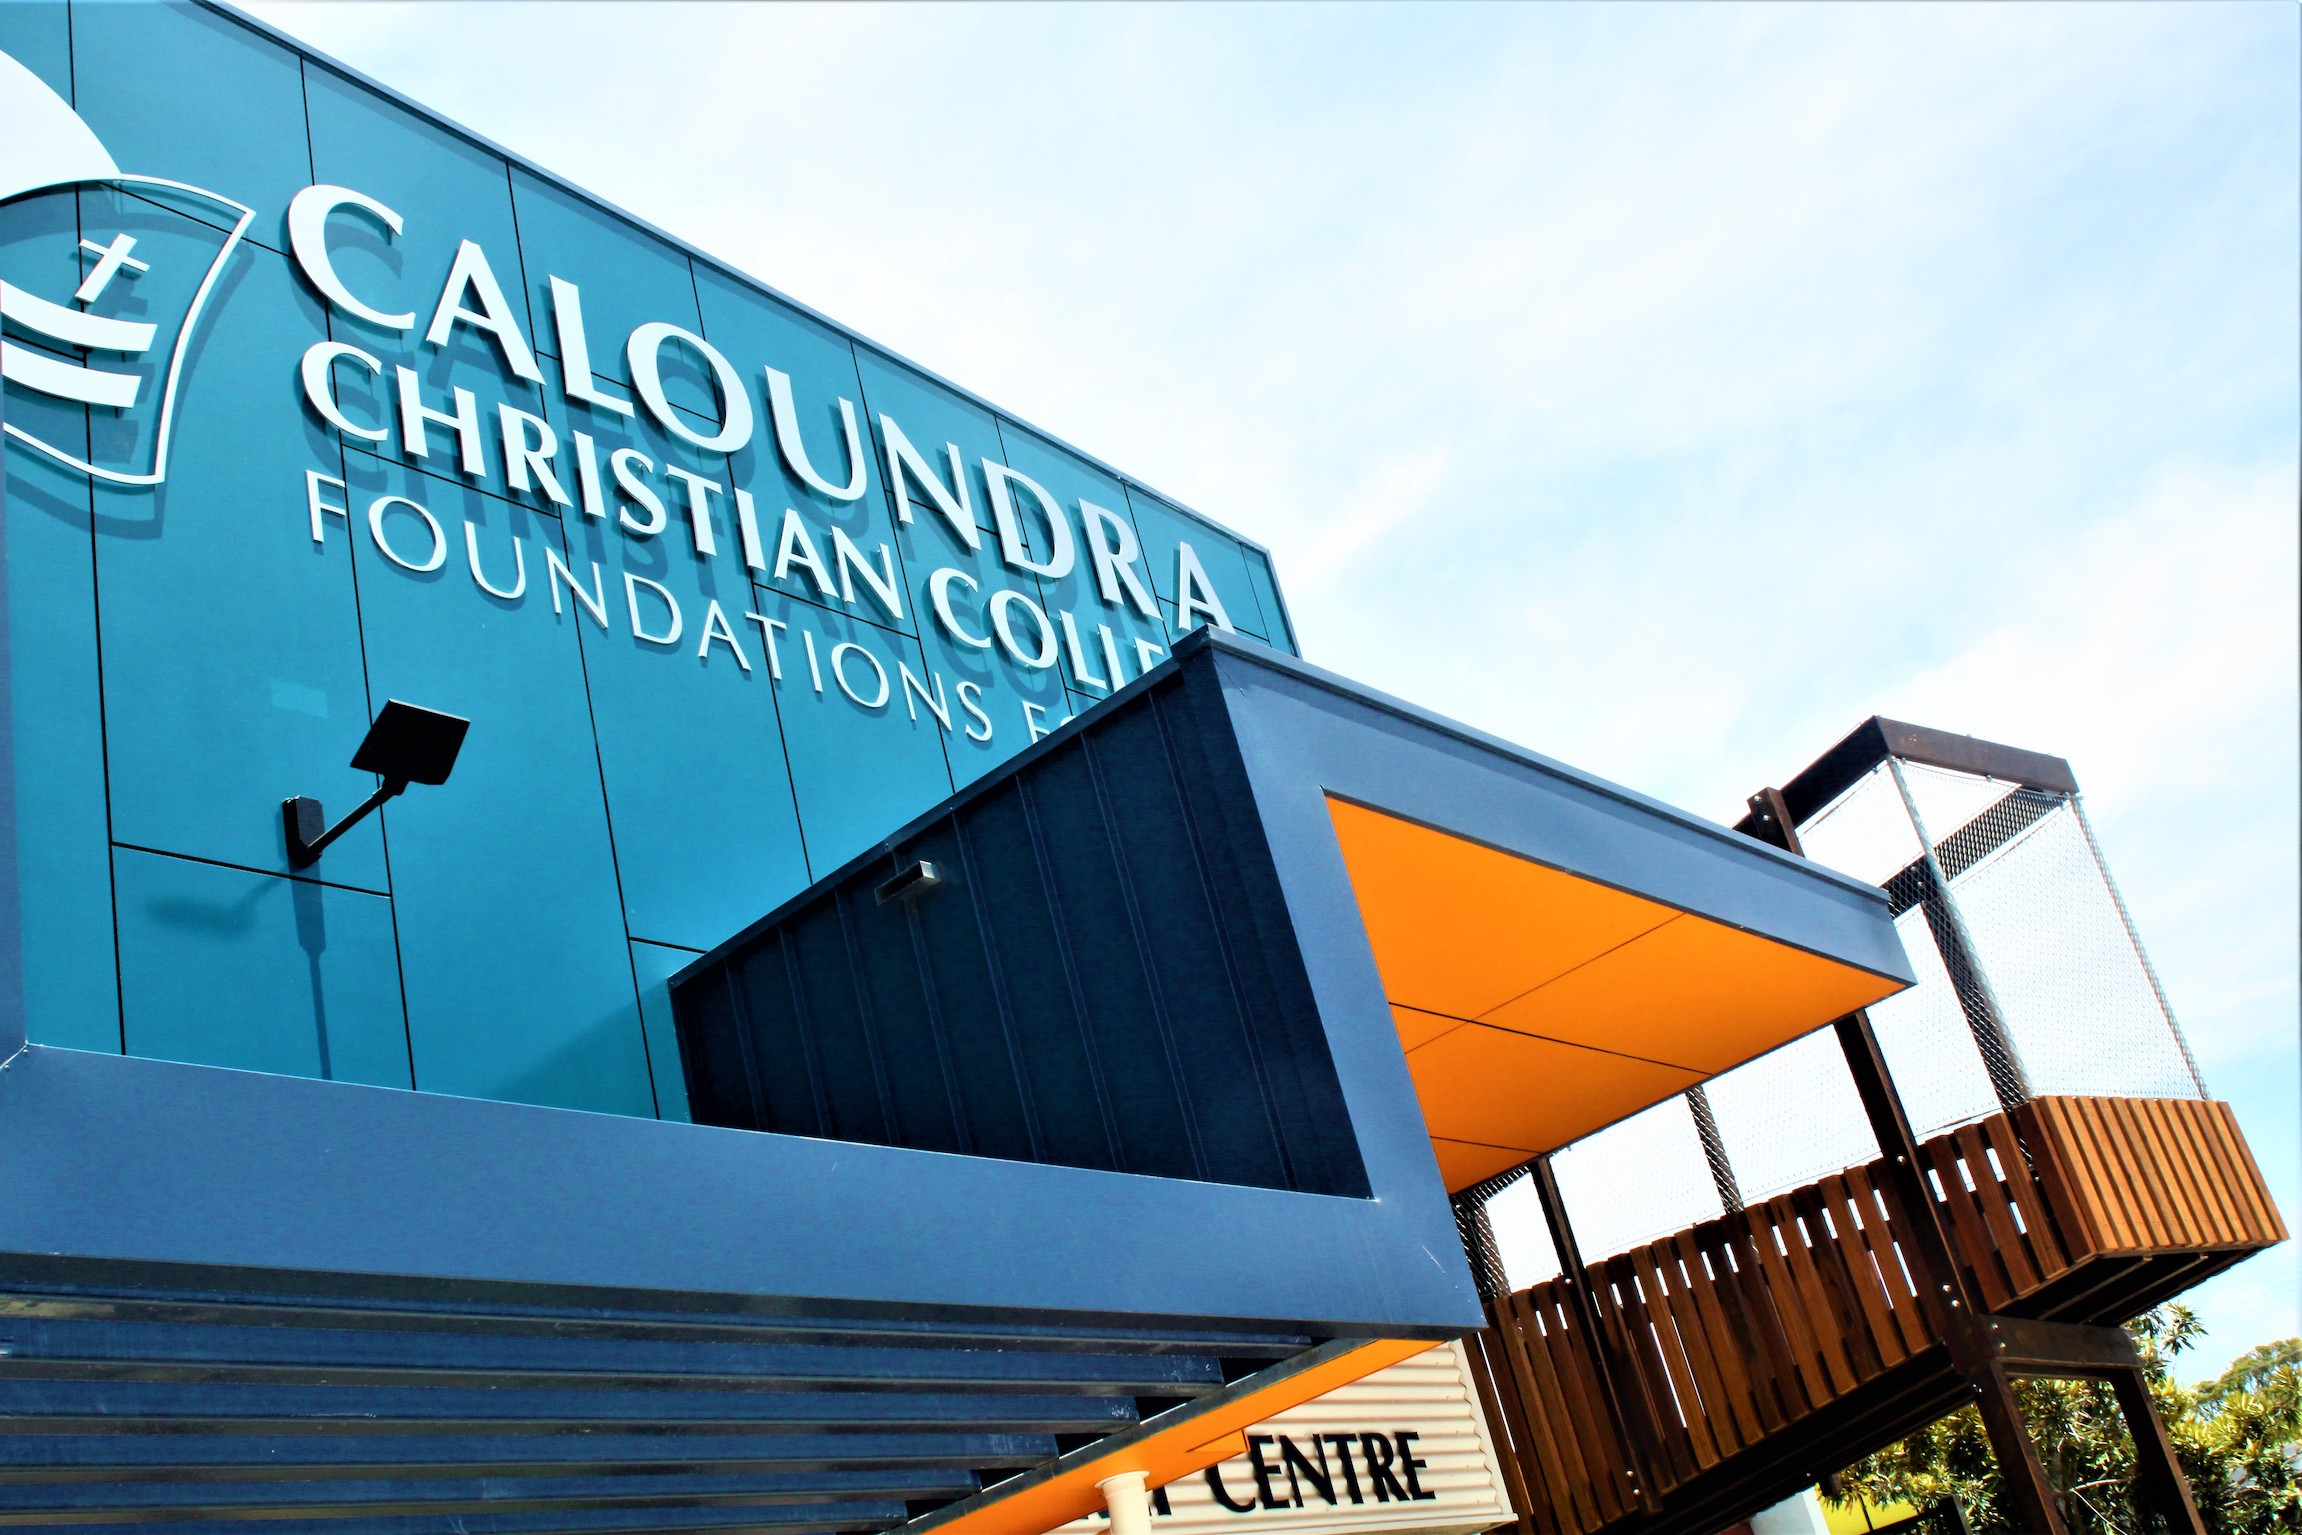 Caloundra Christian College – New Junior Primary Building & Site Fire System Upgrade